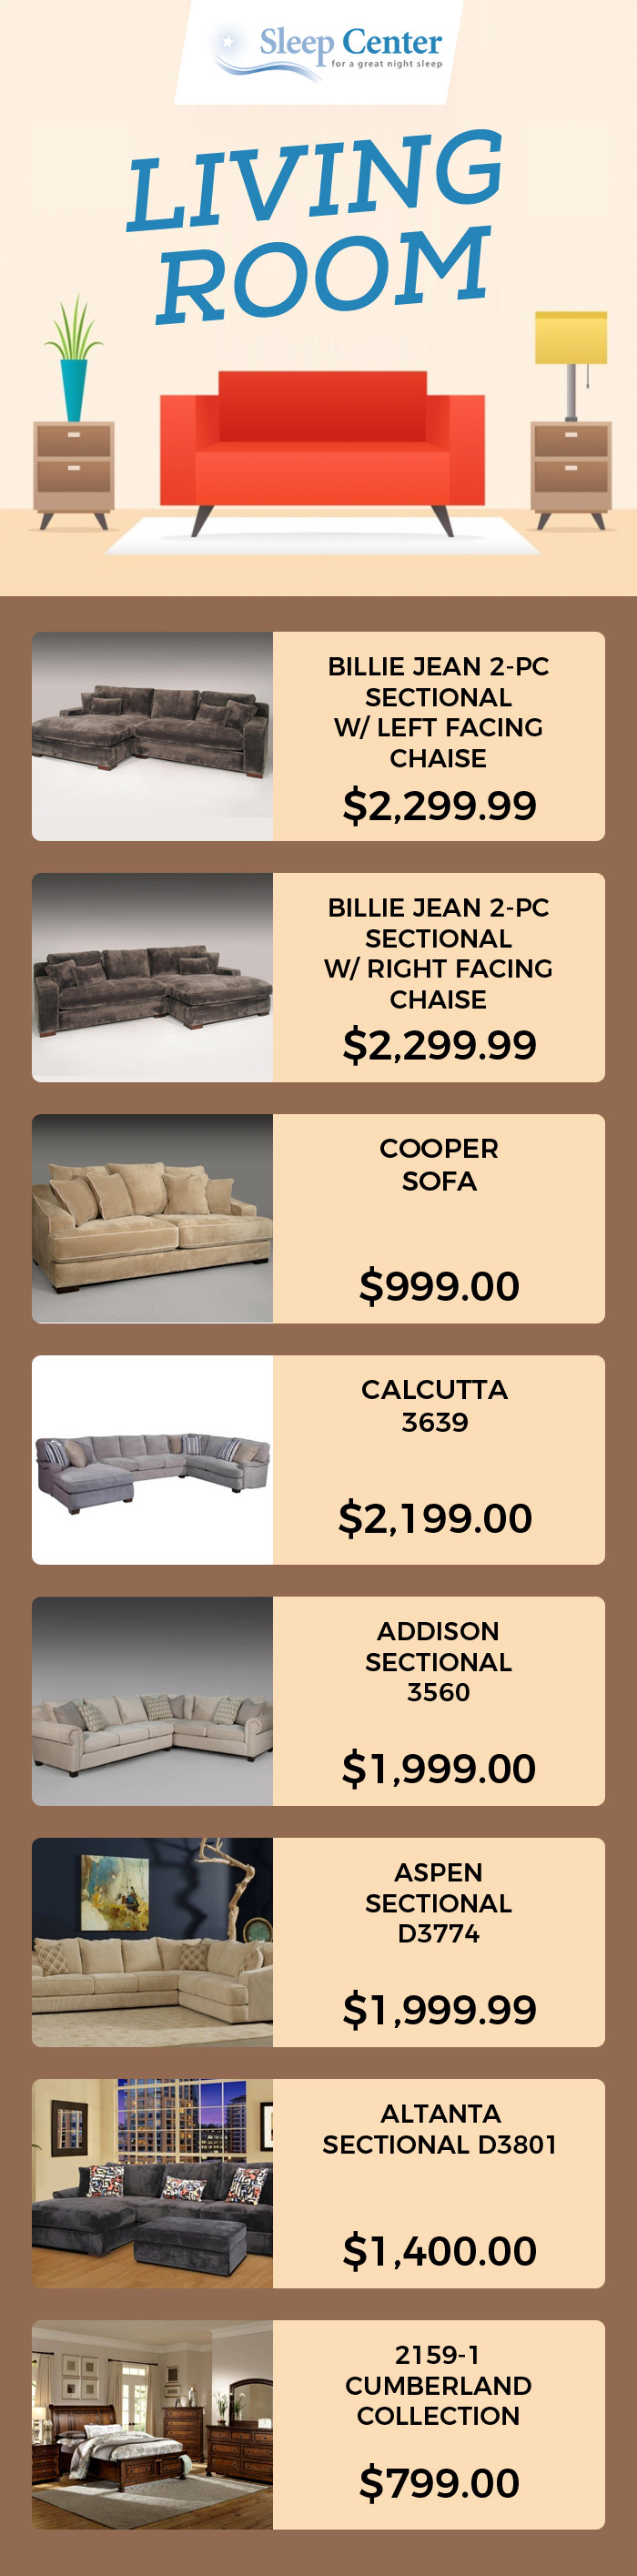 Explore Sleep Center's Living Room Furniture to Fit your Home Decor